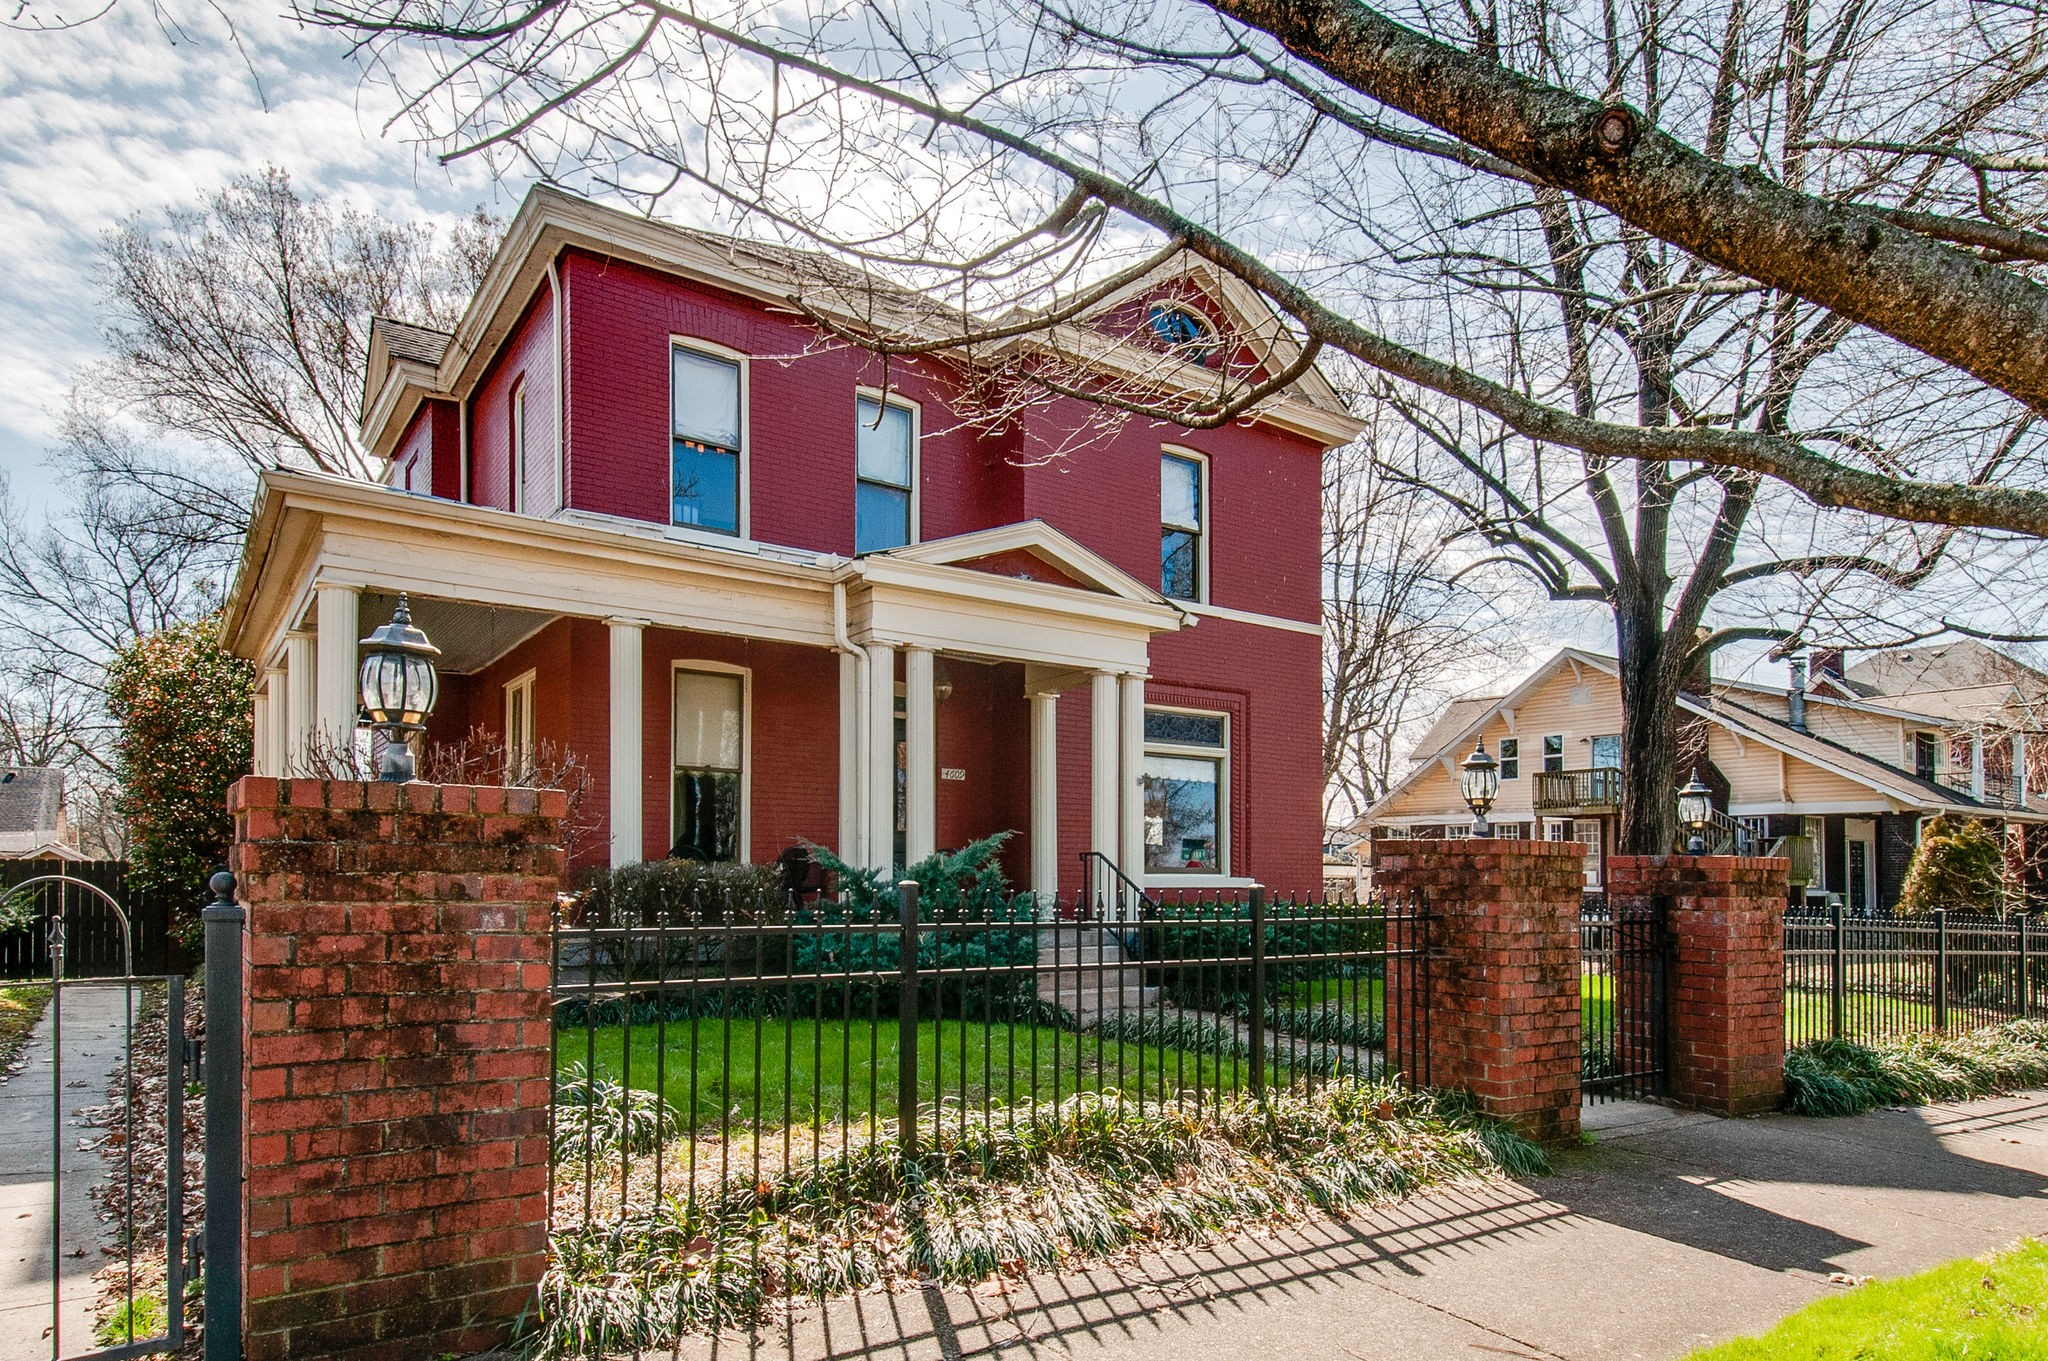 4609 Park Ave, Nashville, TN 37209 - Nashville, TN real estate listing